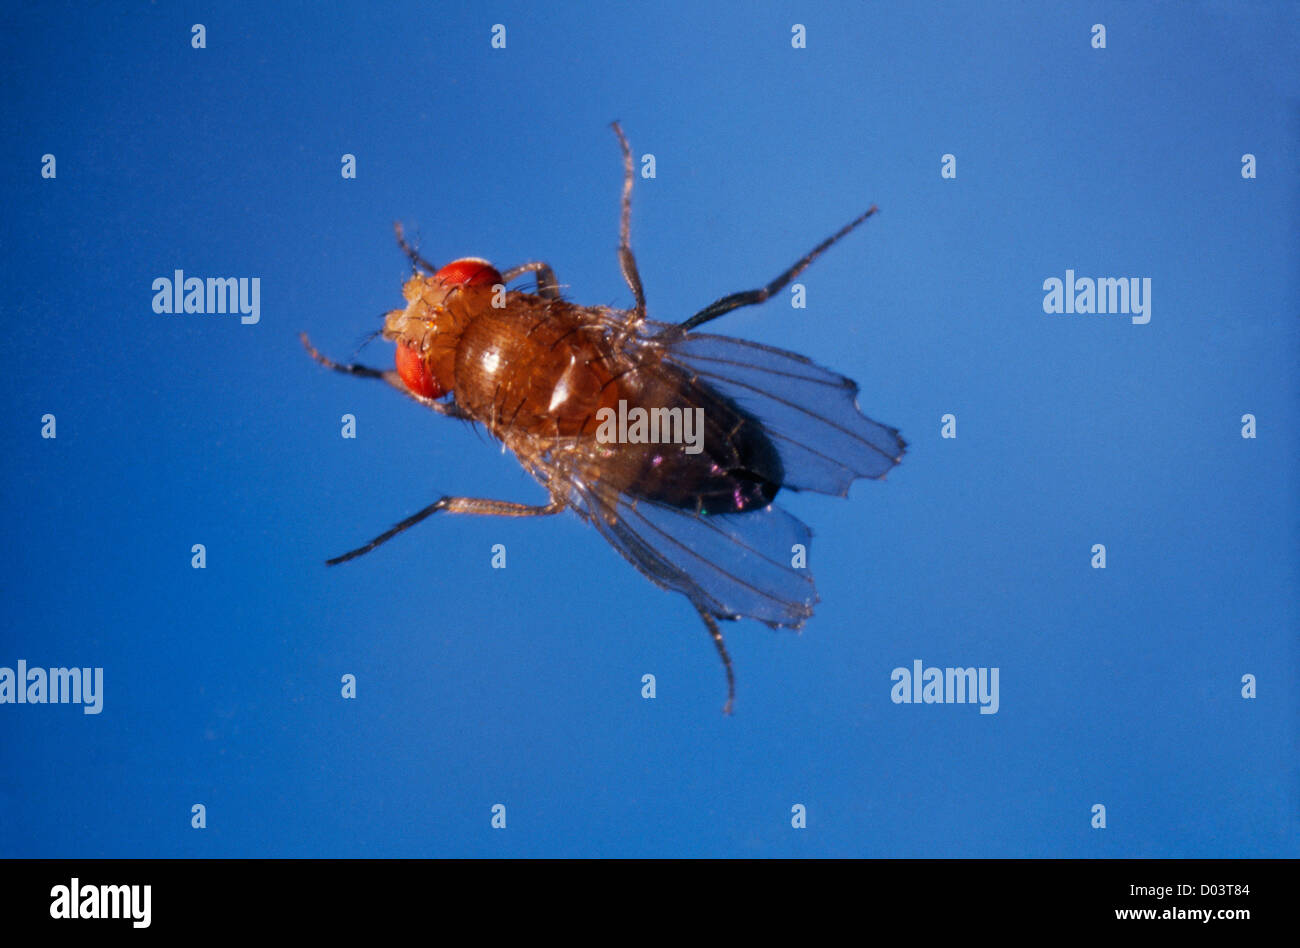 d melanogaster fruit fly report Drosophila melanogaster is an important model organism that can be used as a   drosophila melanogaster offers many advantages for experimental study and  has  in one of the first papers in this field, he reported on the discovery of a.